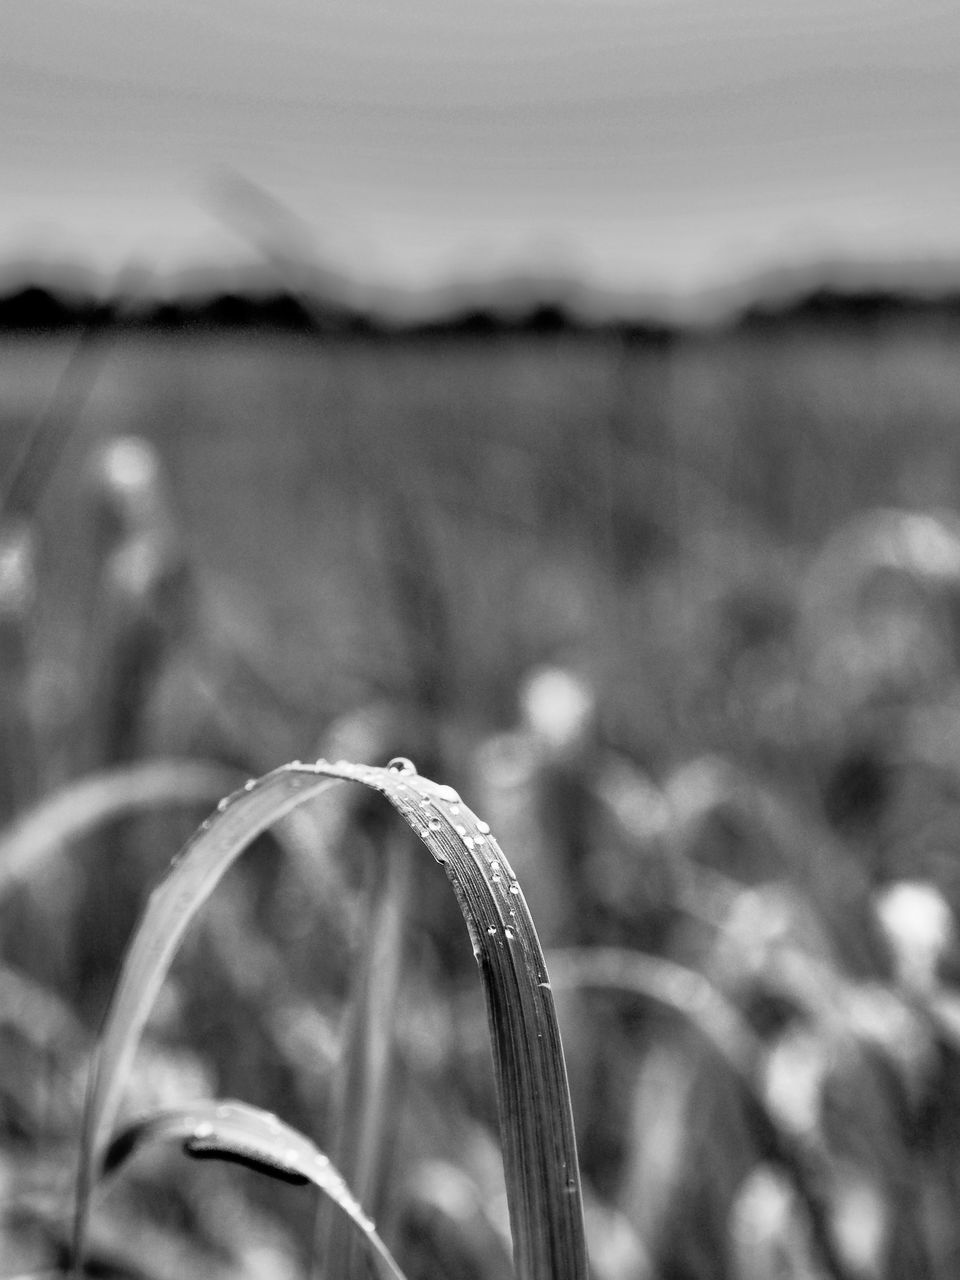 focus on foreground, nature, growth, no people, plant, outdoors, tranquility, day, close-up, beauty in nature, grass, water, freshness, sky